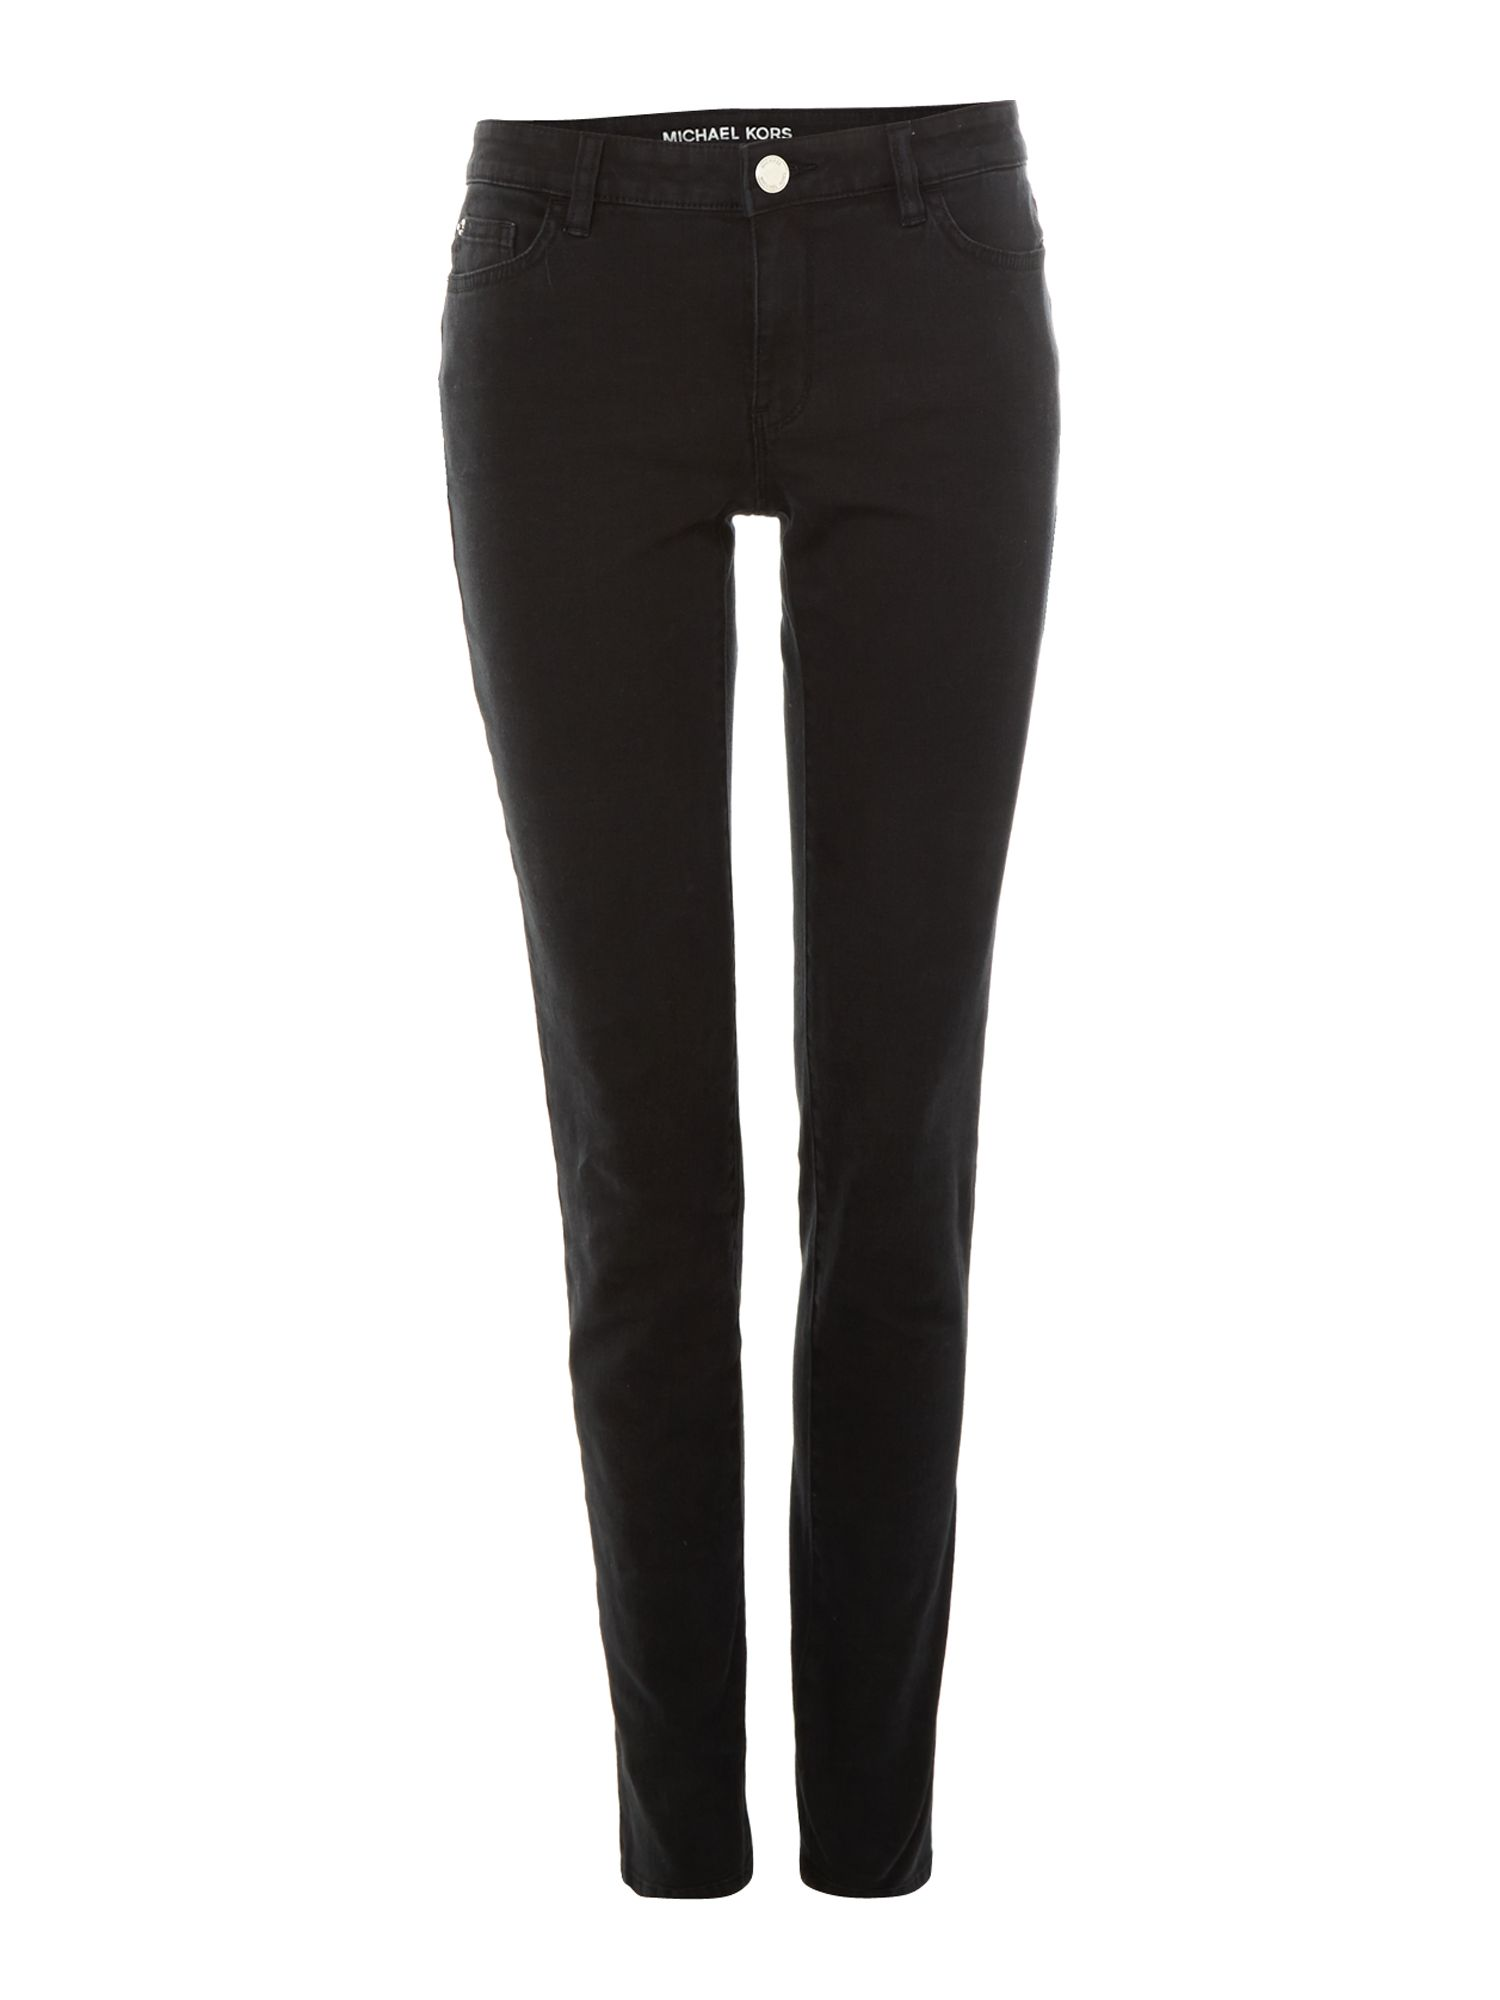 Slim black jegging jean